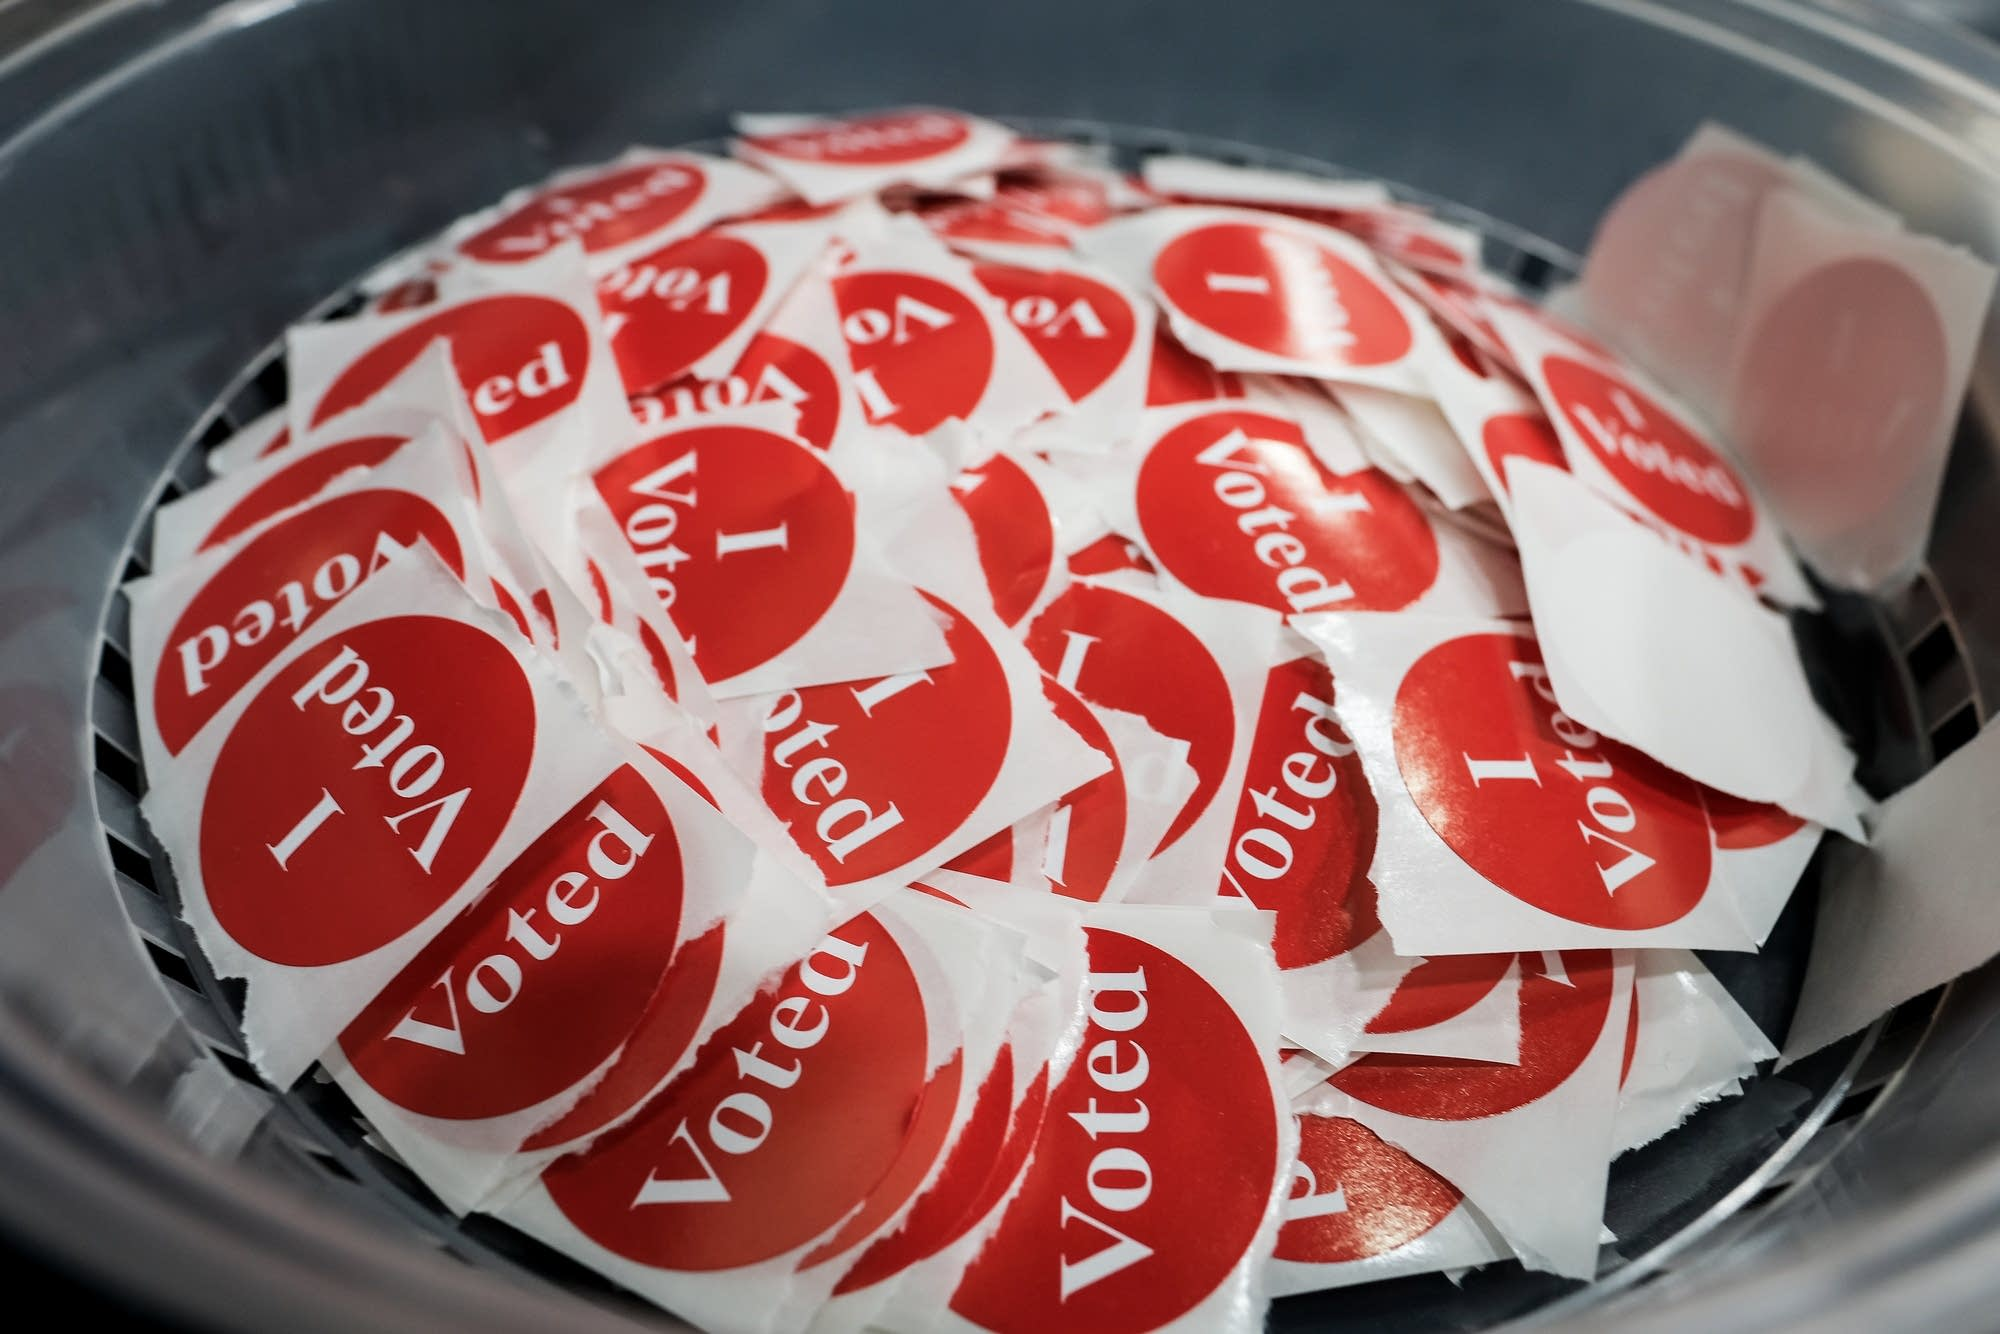 Voting stickers at Brian Coyle Community Center